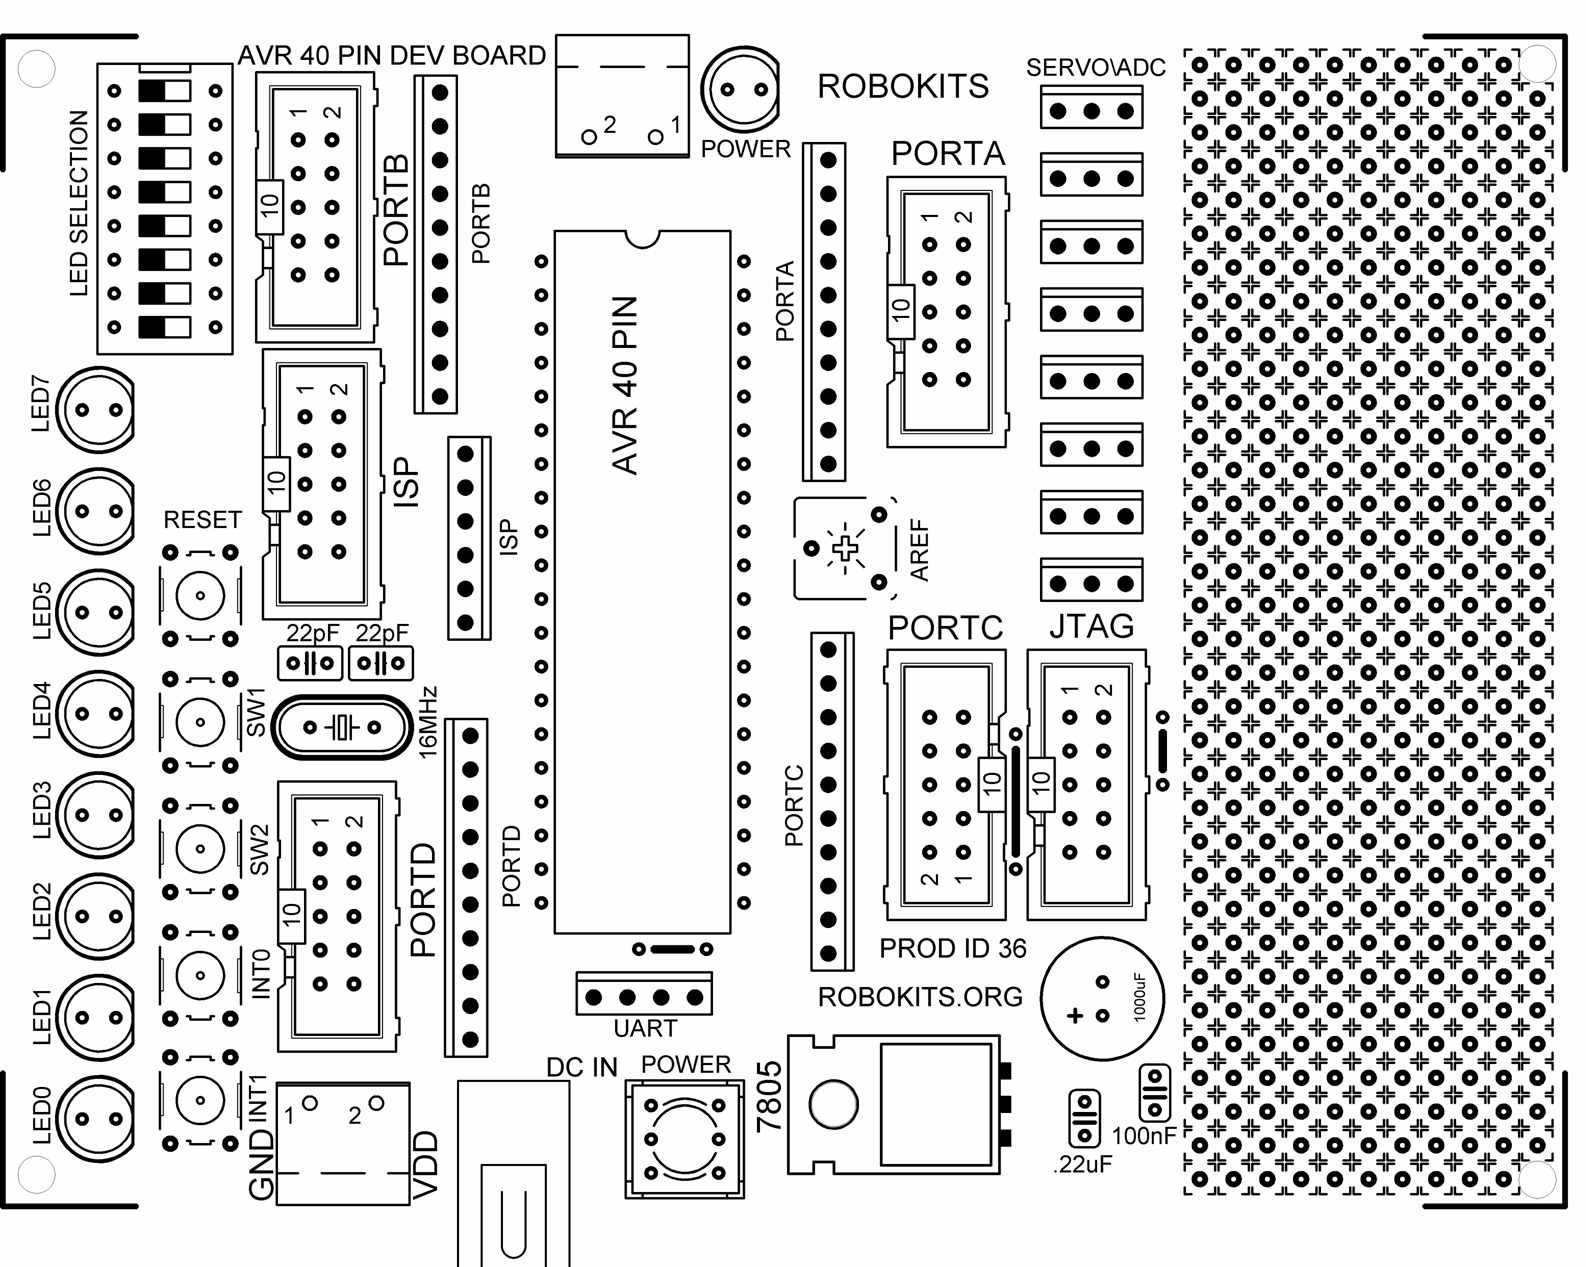 MICROPROCESSOR AND MICROCONTROLLER: October 2012